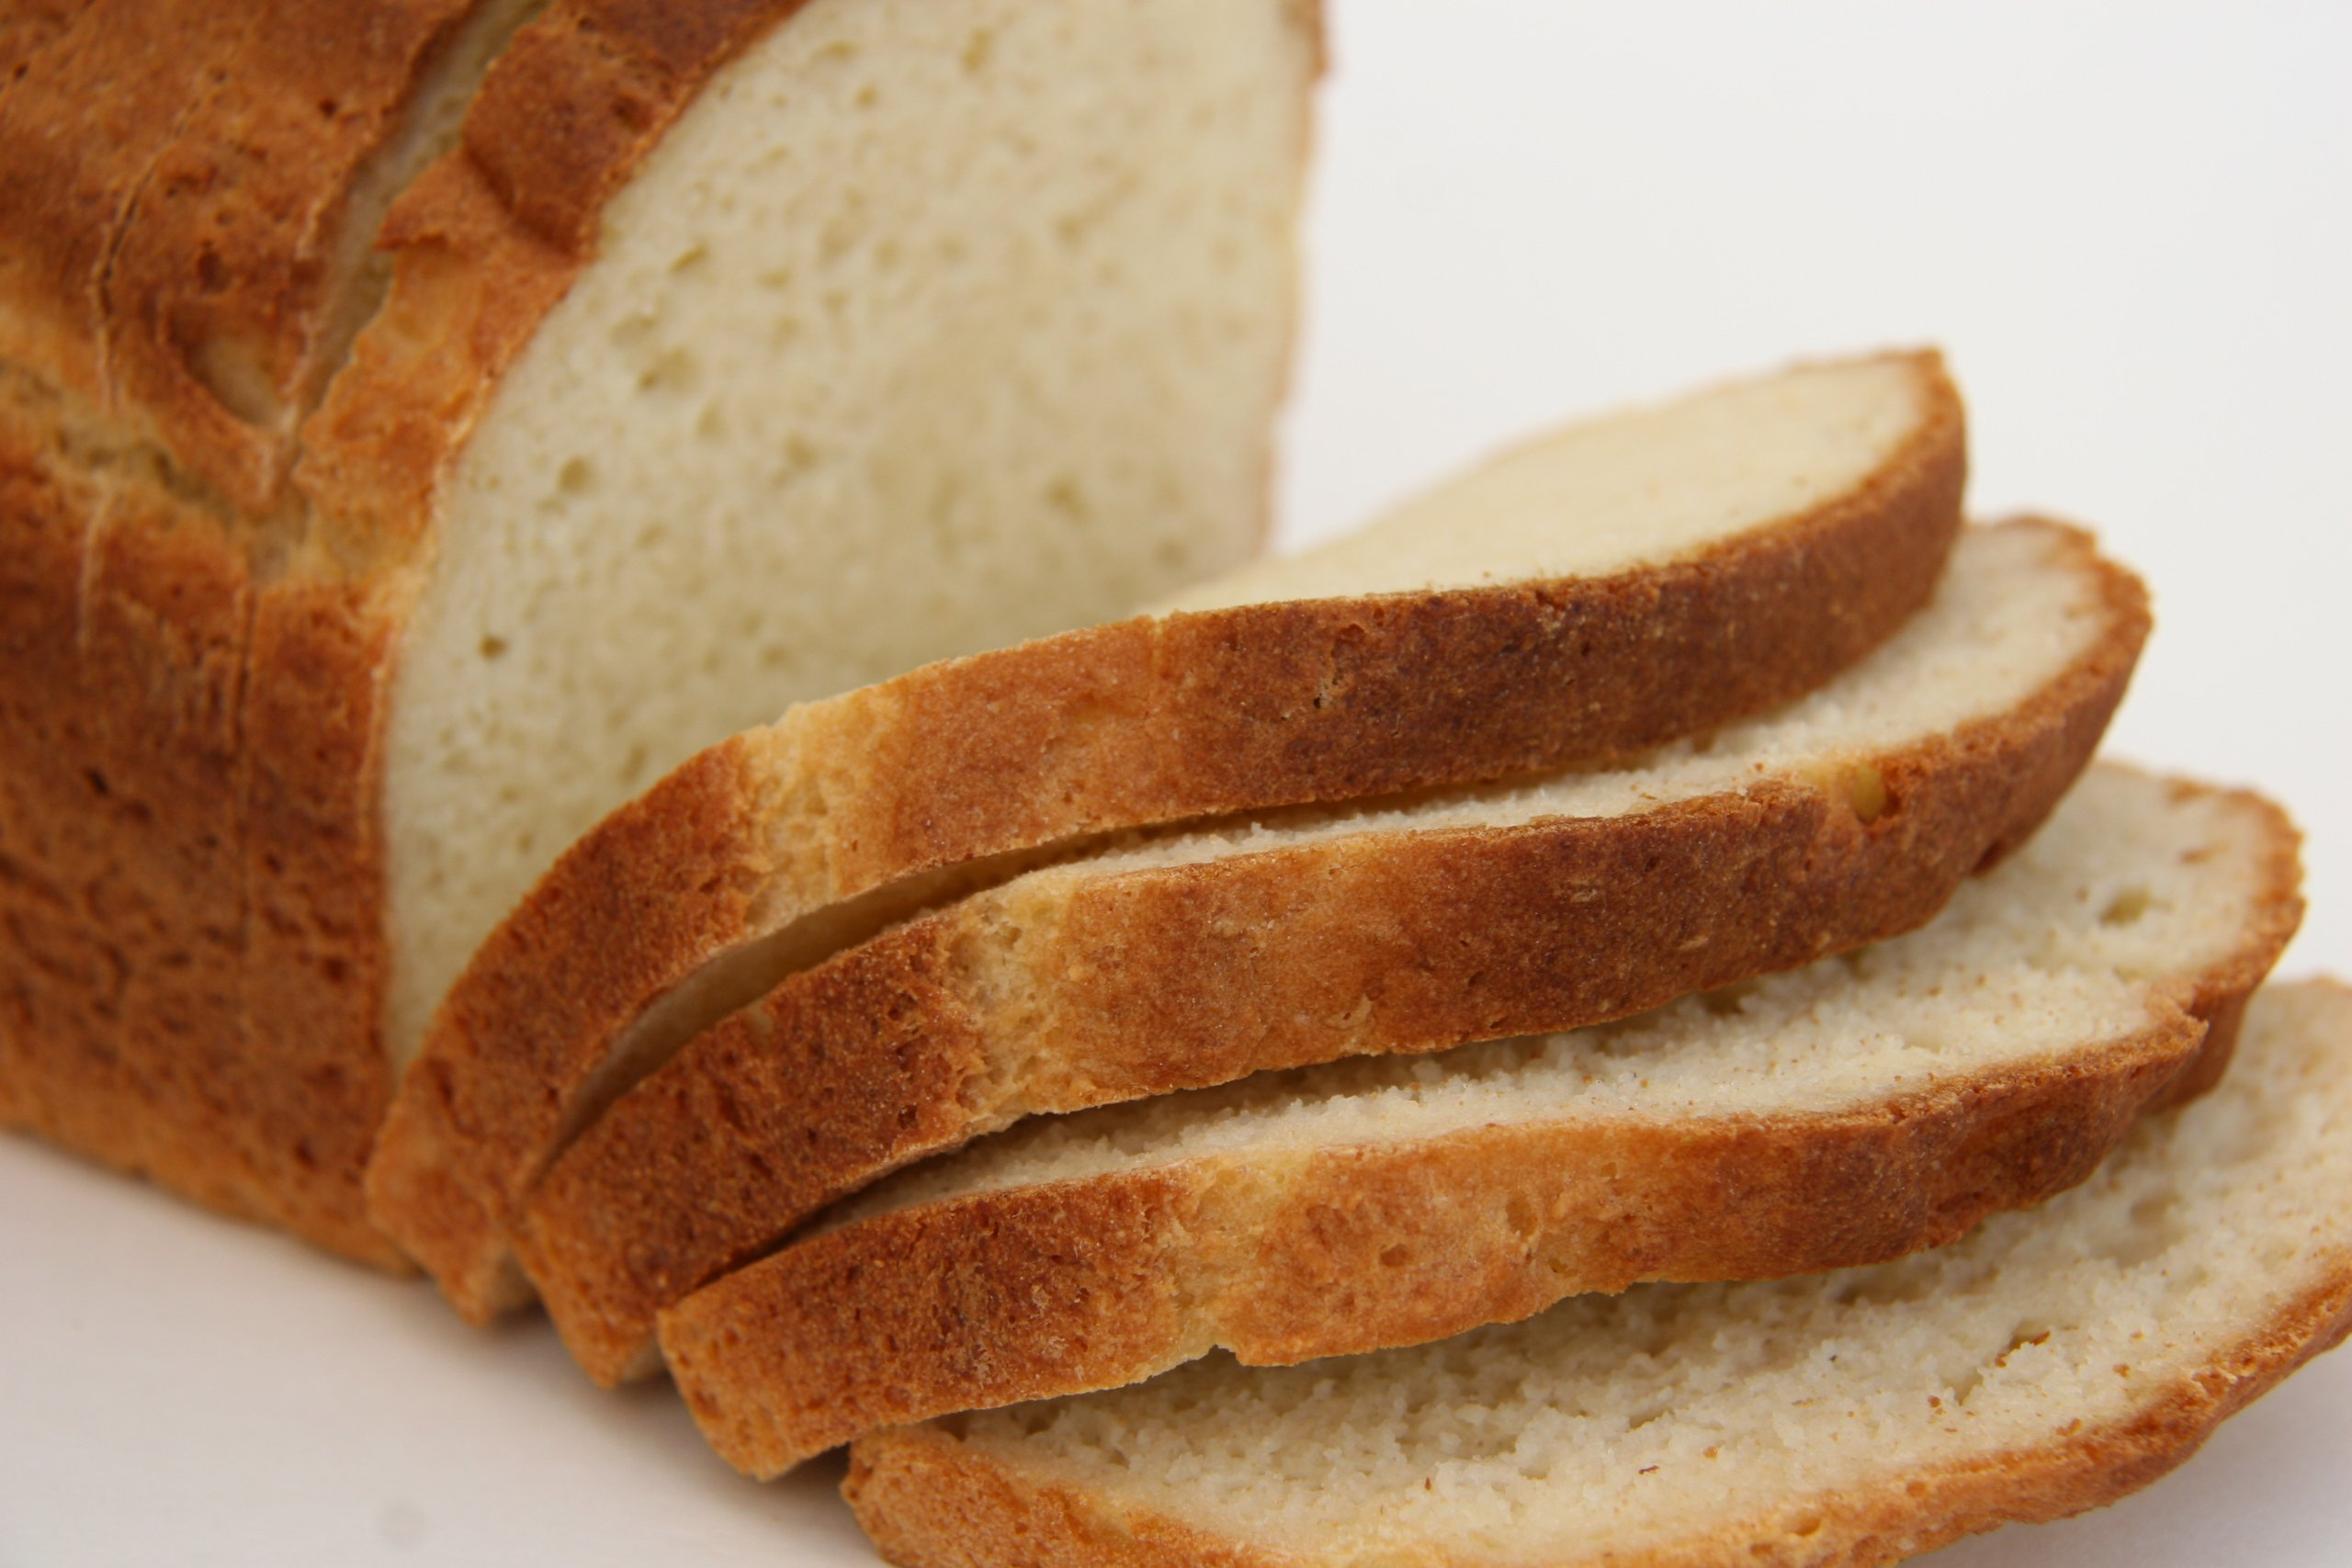 New Grains Gluten Free White Sandwich Bread, 32 oz Loaf